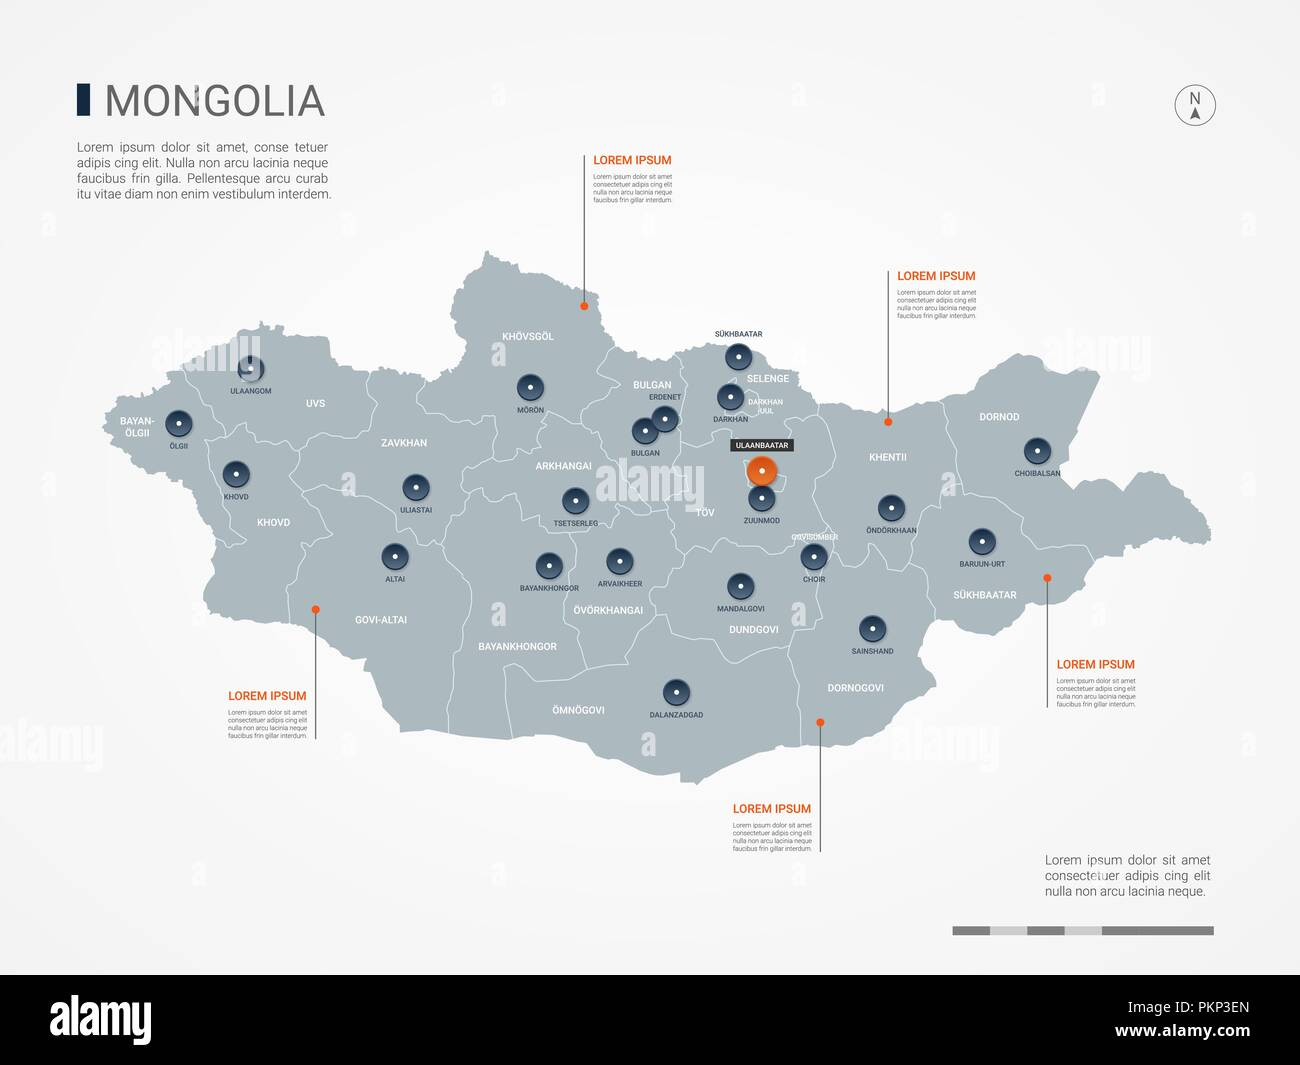 Mongolia map with borders, cities, capital and administrative divisions. Infographic vector map. Editable layers clearly labeled. - Stock Image